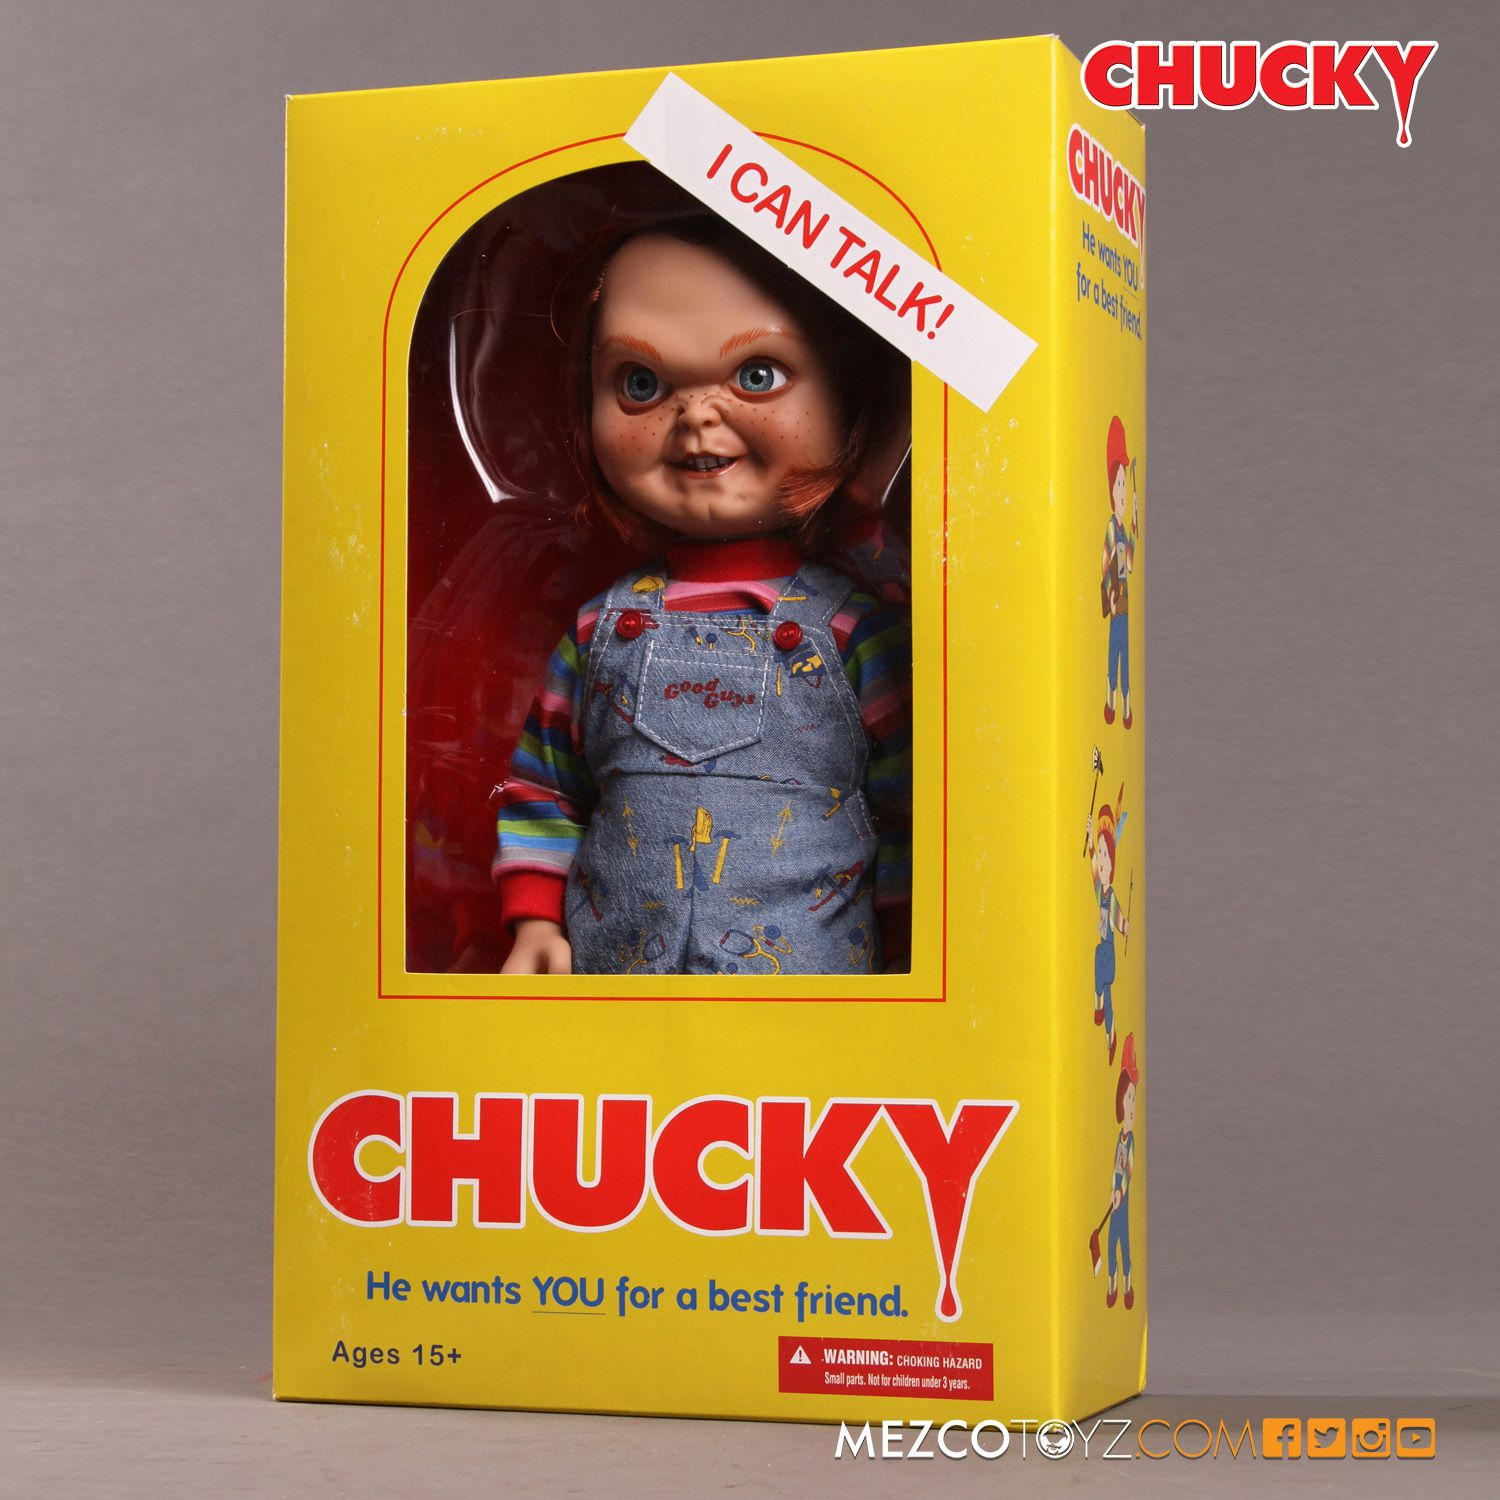 Toys R Us Chucky : Child s play talking sneering chucky doll mezco toyz